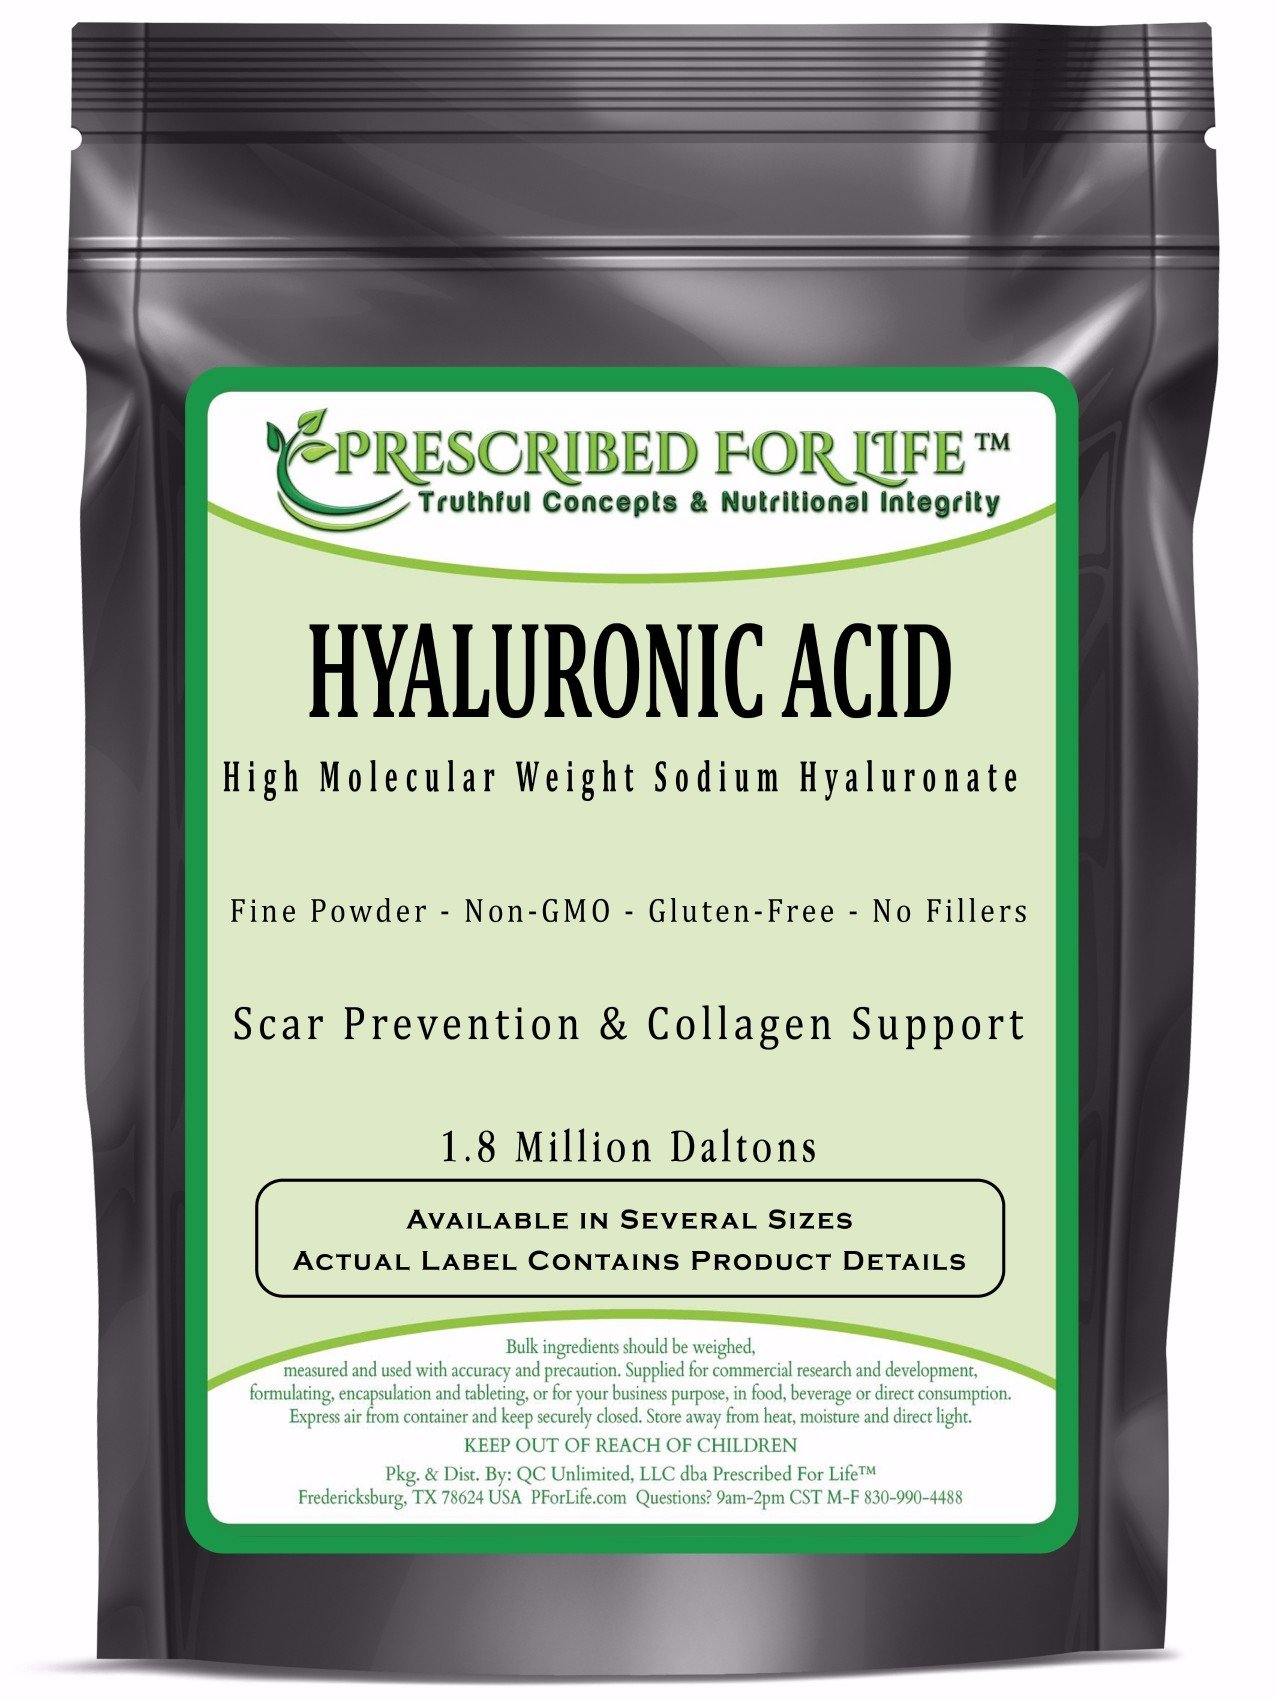 Hyaluronic Acid - Natural Food Grade Sodium Hyaluronate (HA) Powder - High Molecular Weight 1.8 mil Daltons, 12 oz